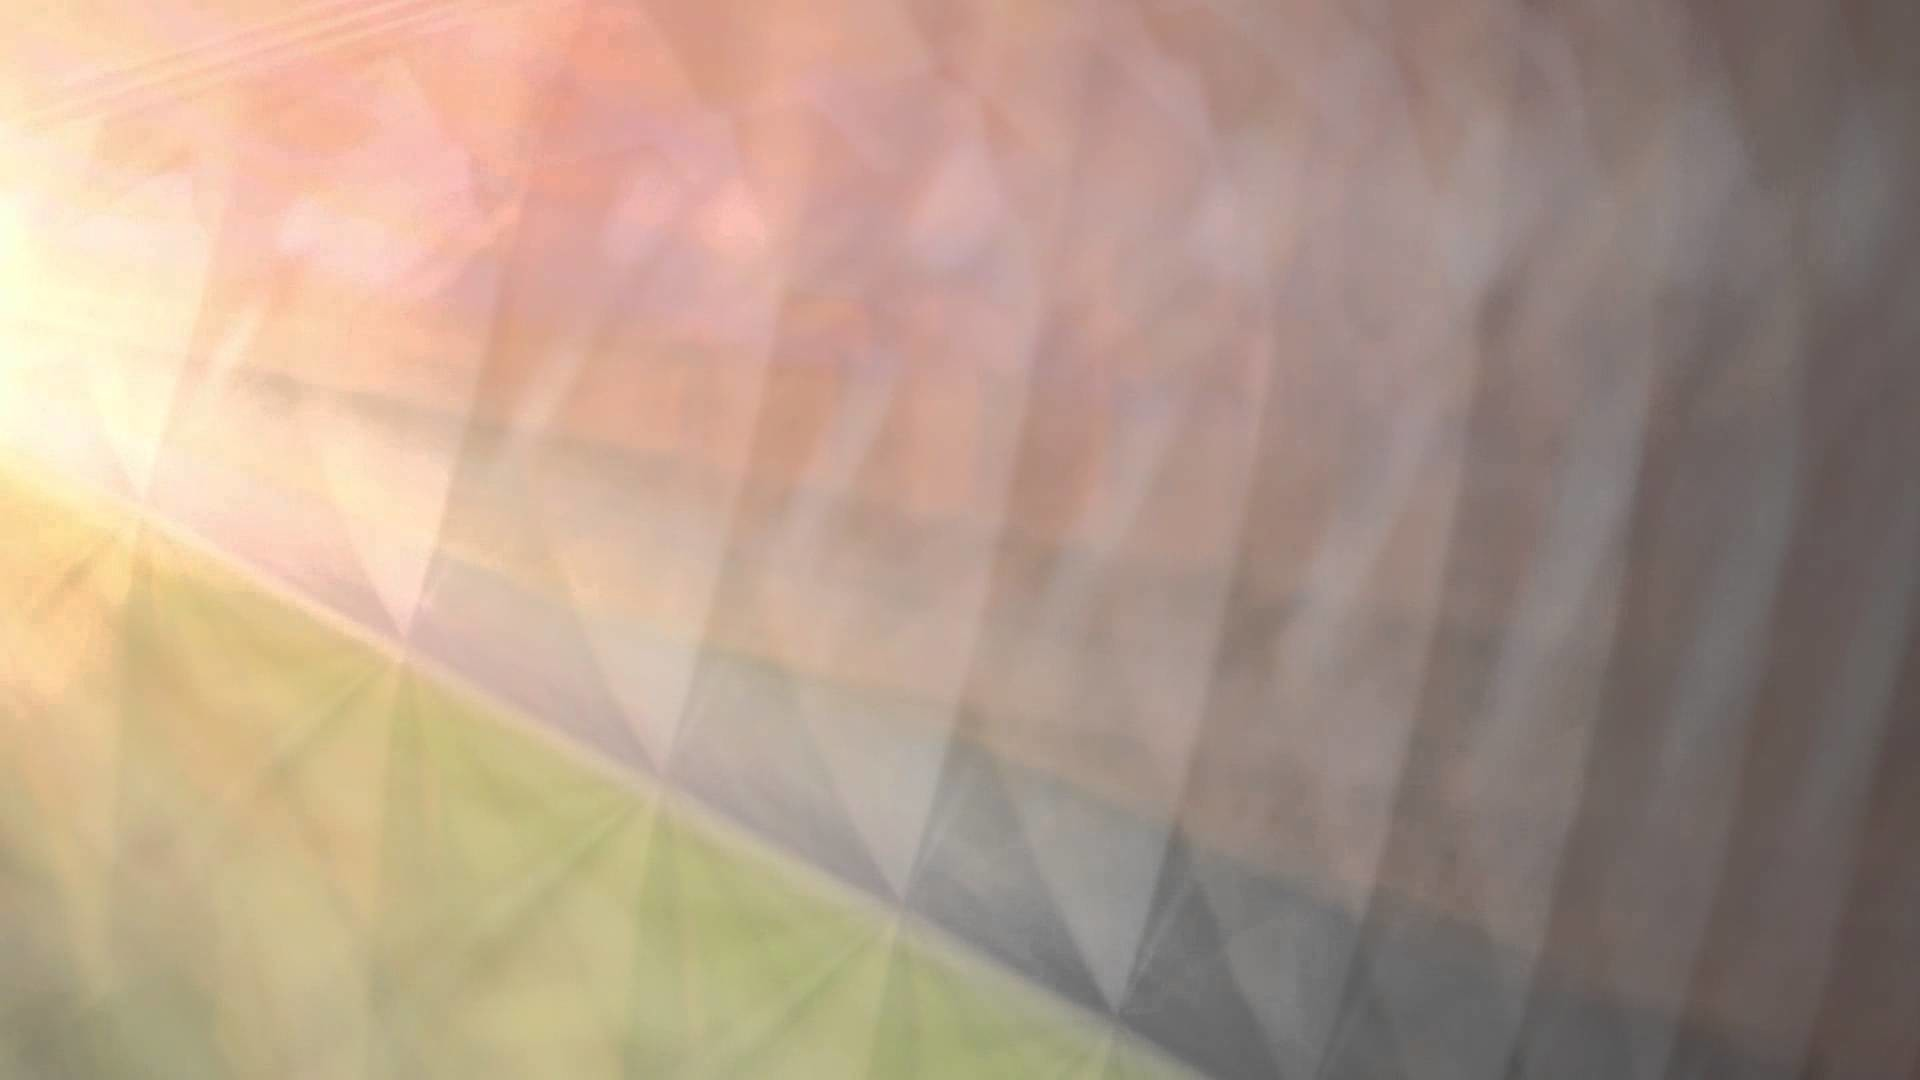 Abstract ambient light – HD animated background #36